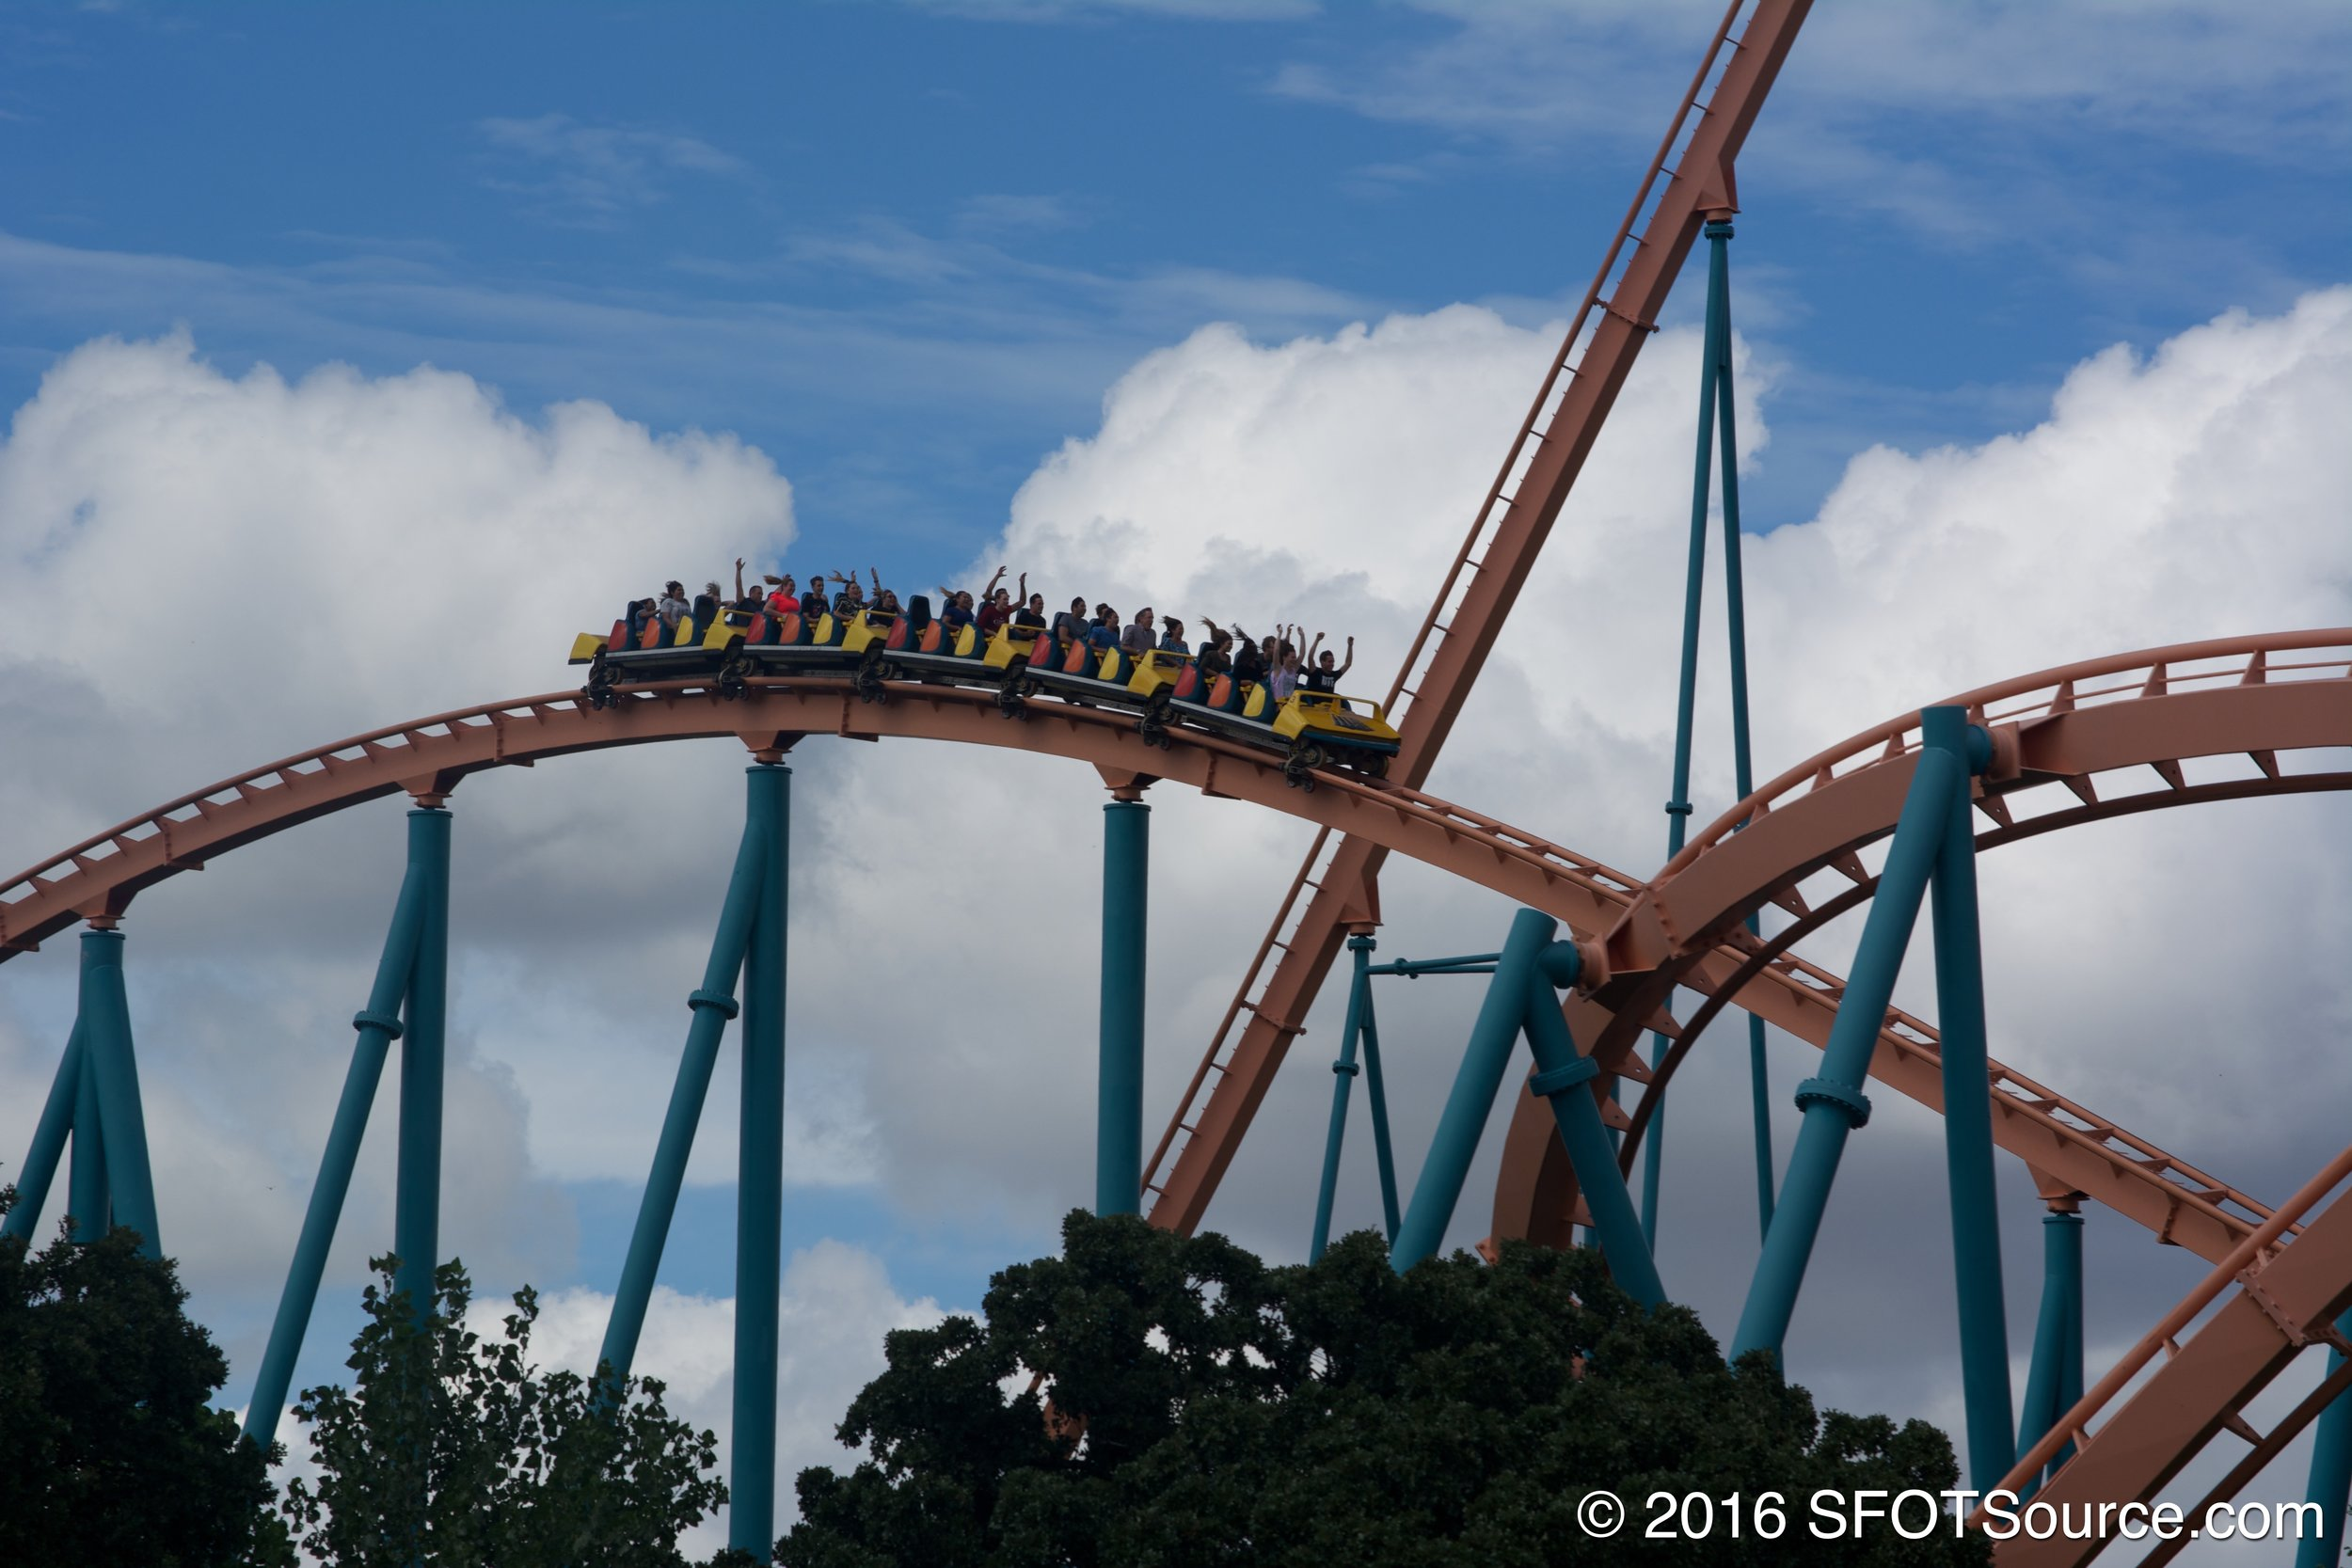 Titan's third hill with a good dose of airtime.